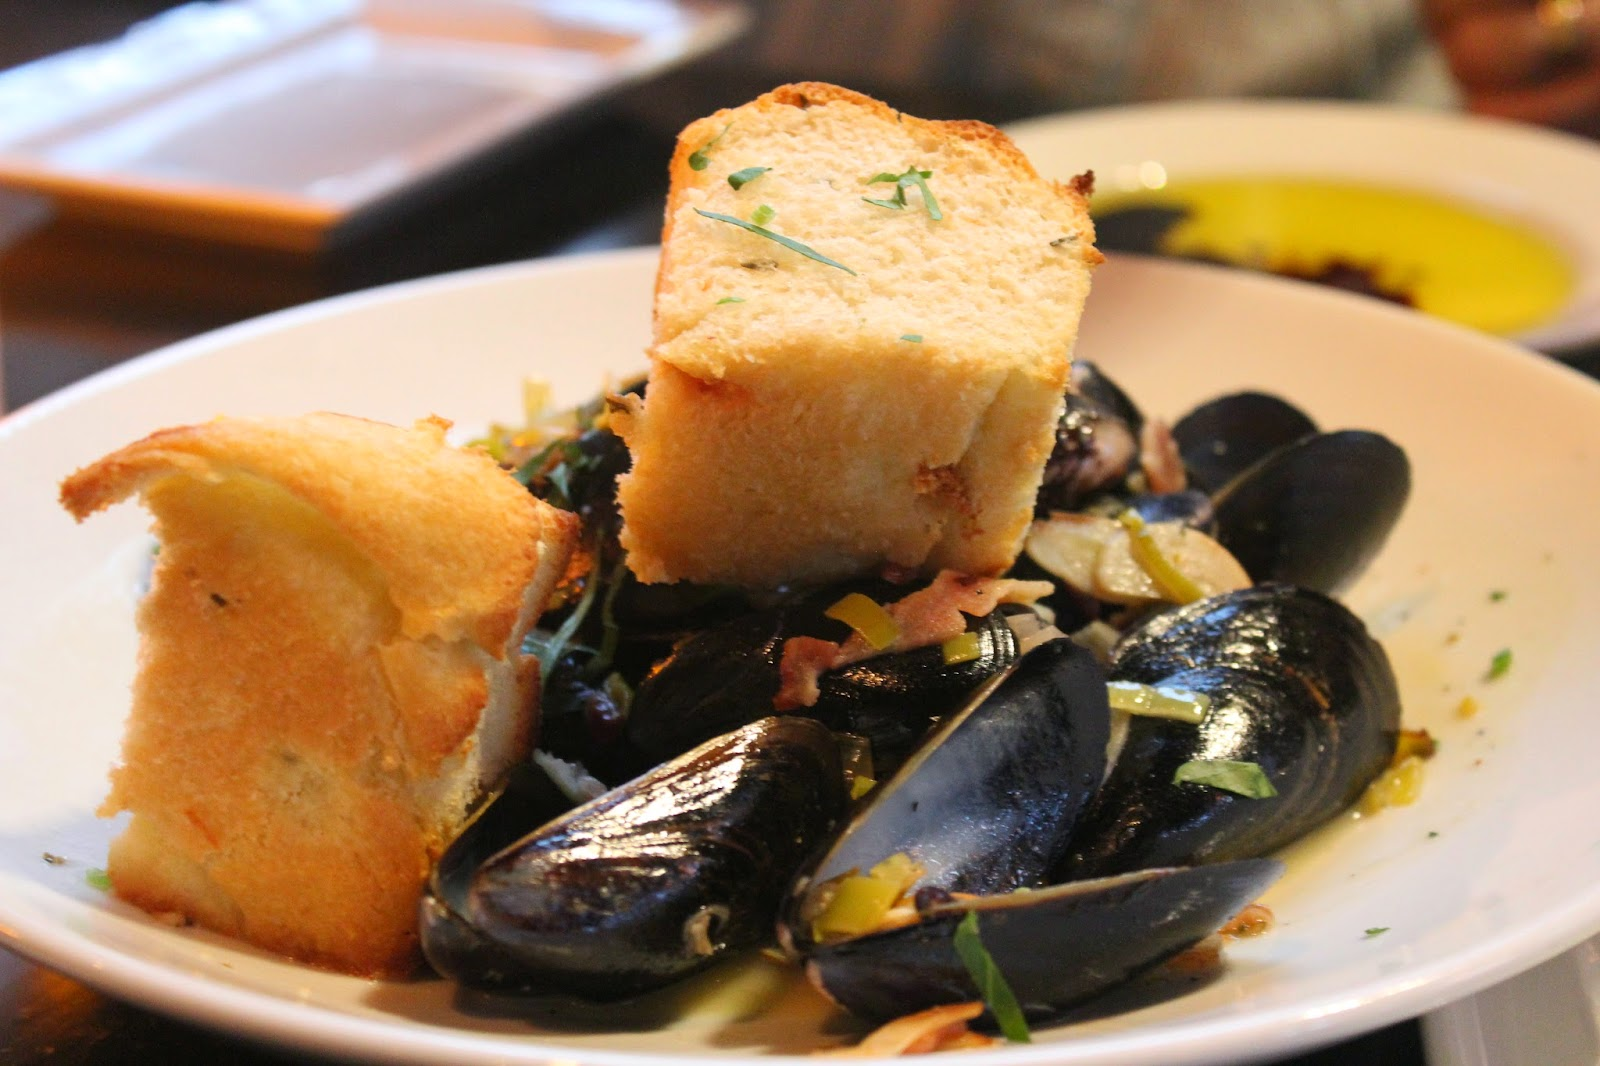 P.E.I mussels at Orta, Pembroke, Mass.